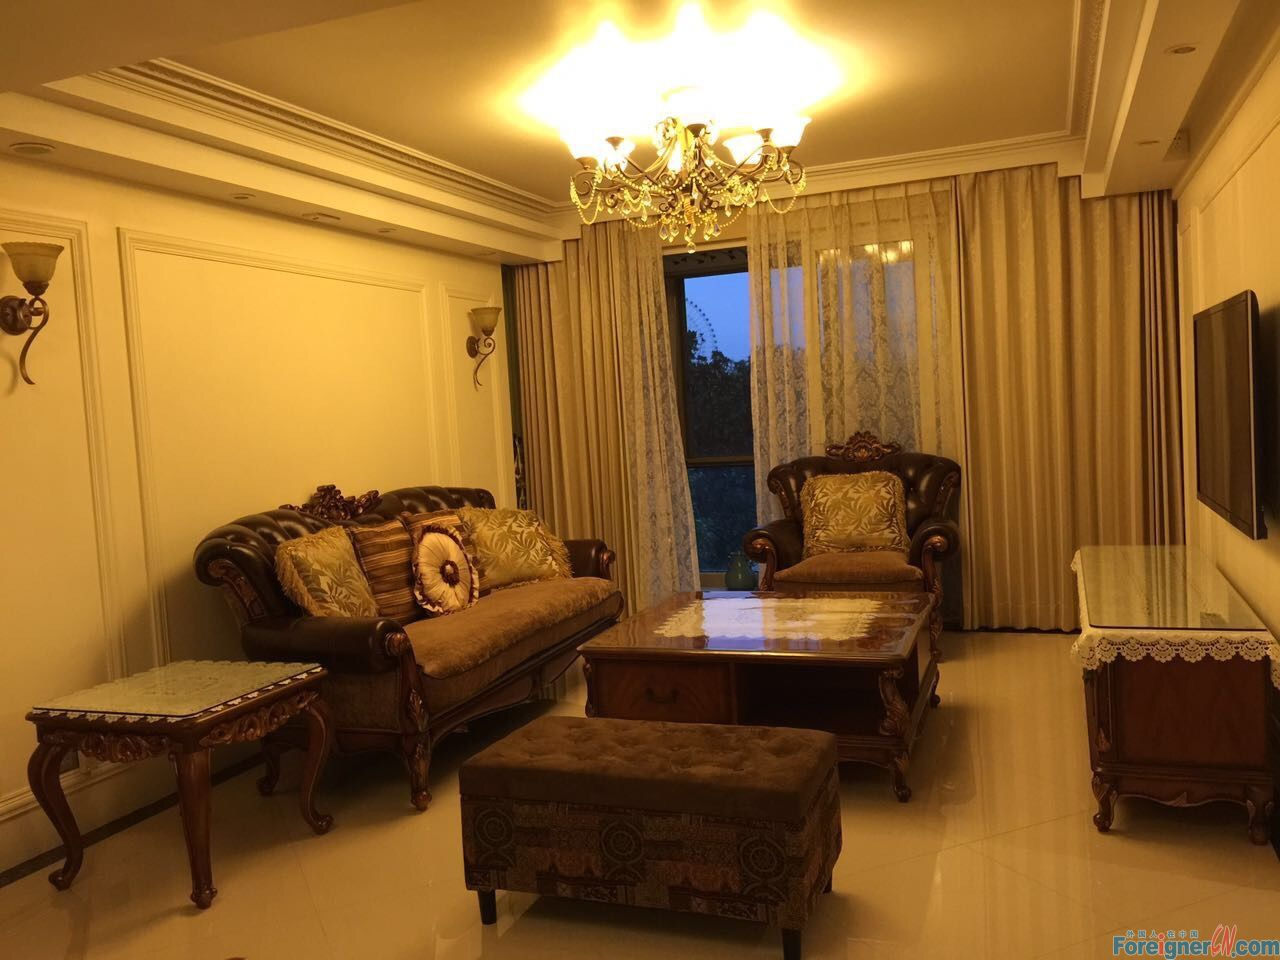 Terrific!Living Bank-3brs-have American style furniture-near metro-fully furnished